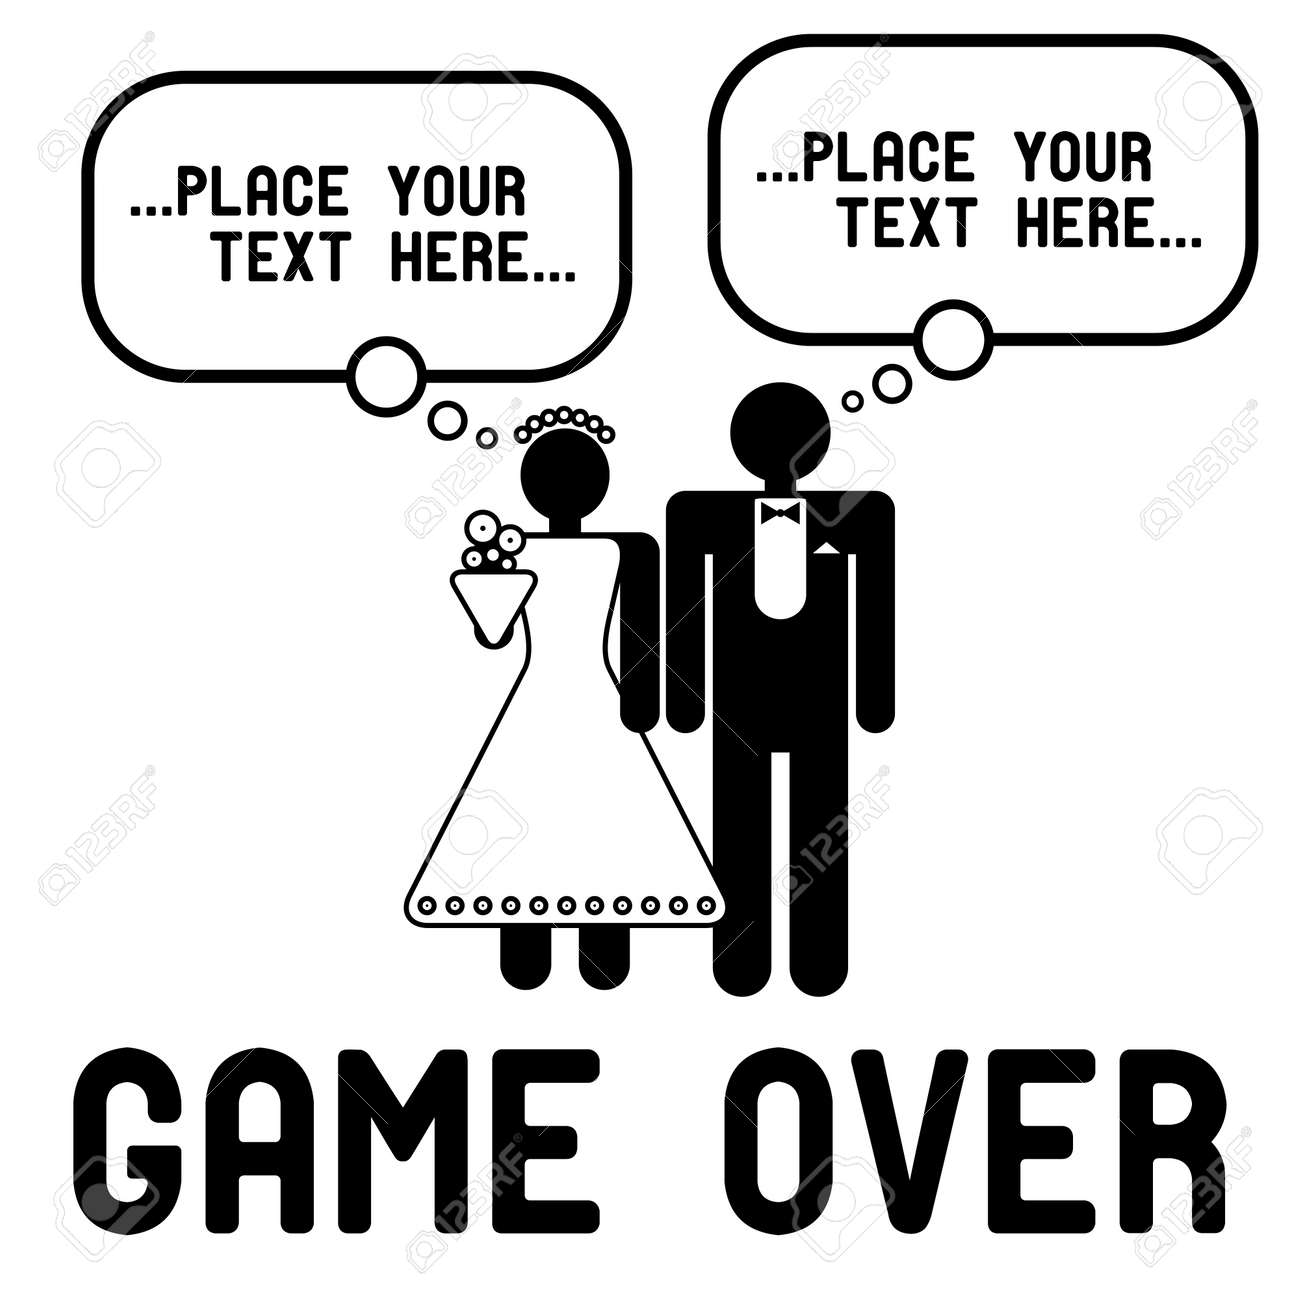 Funny wedding symbols with speech bubbles - Game Over Stock Vector - 14358322